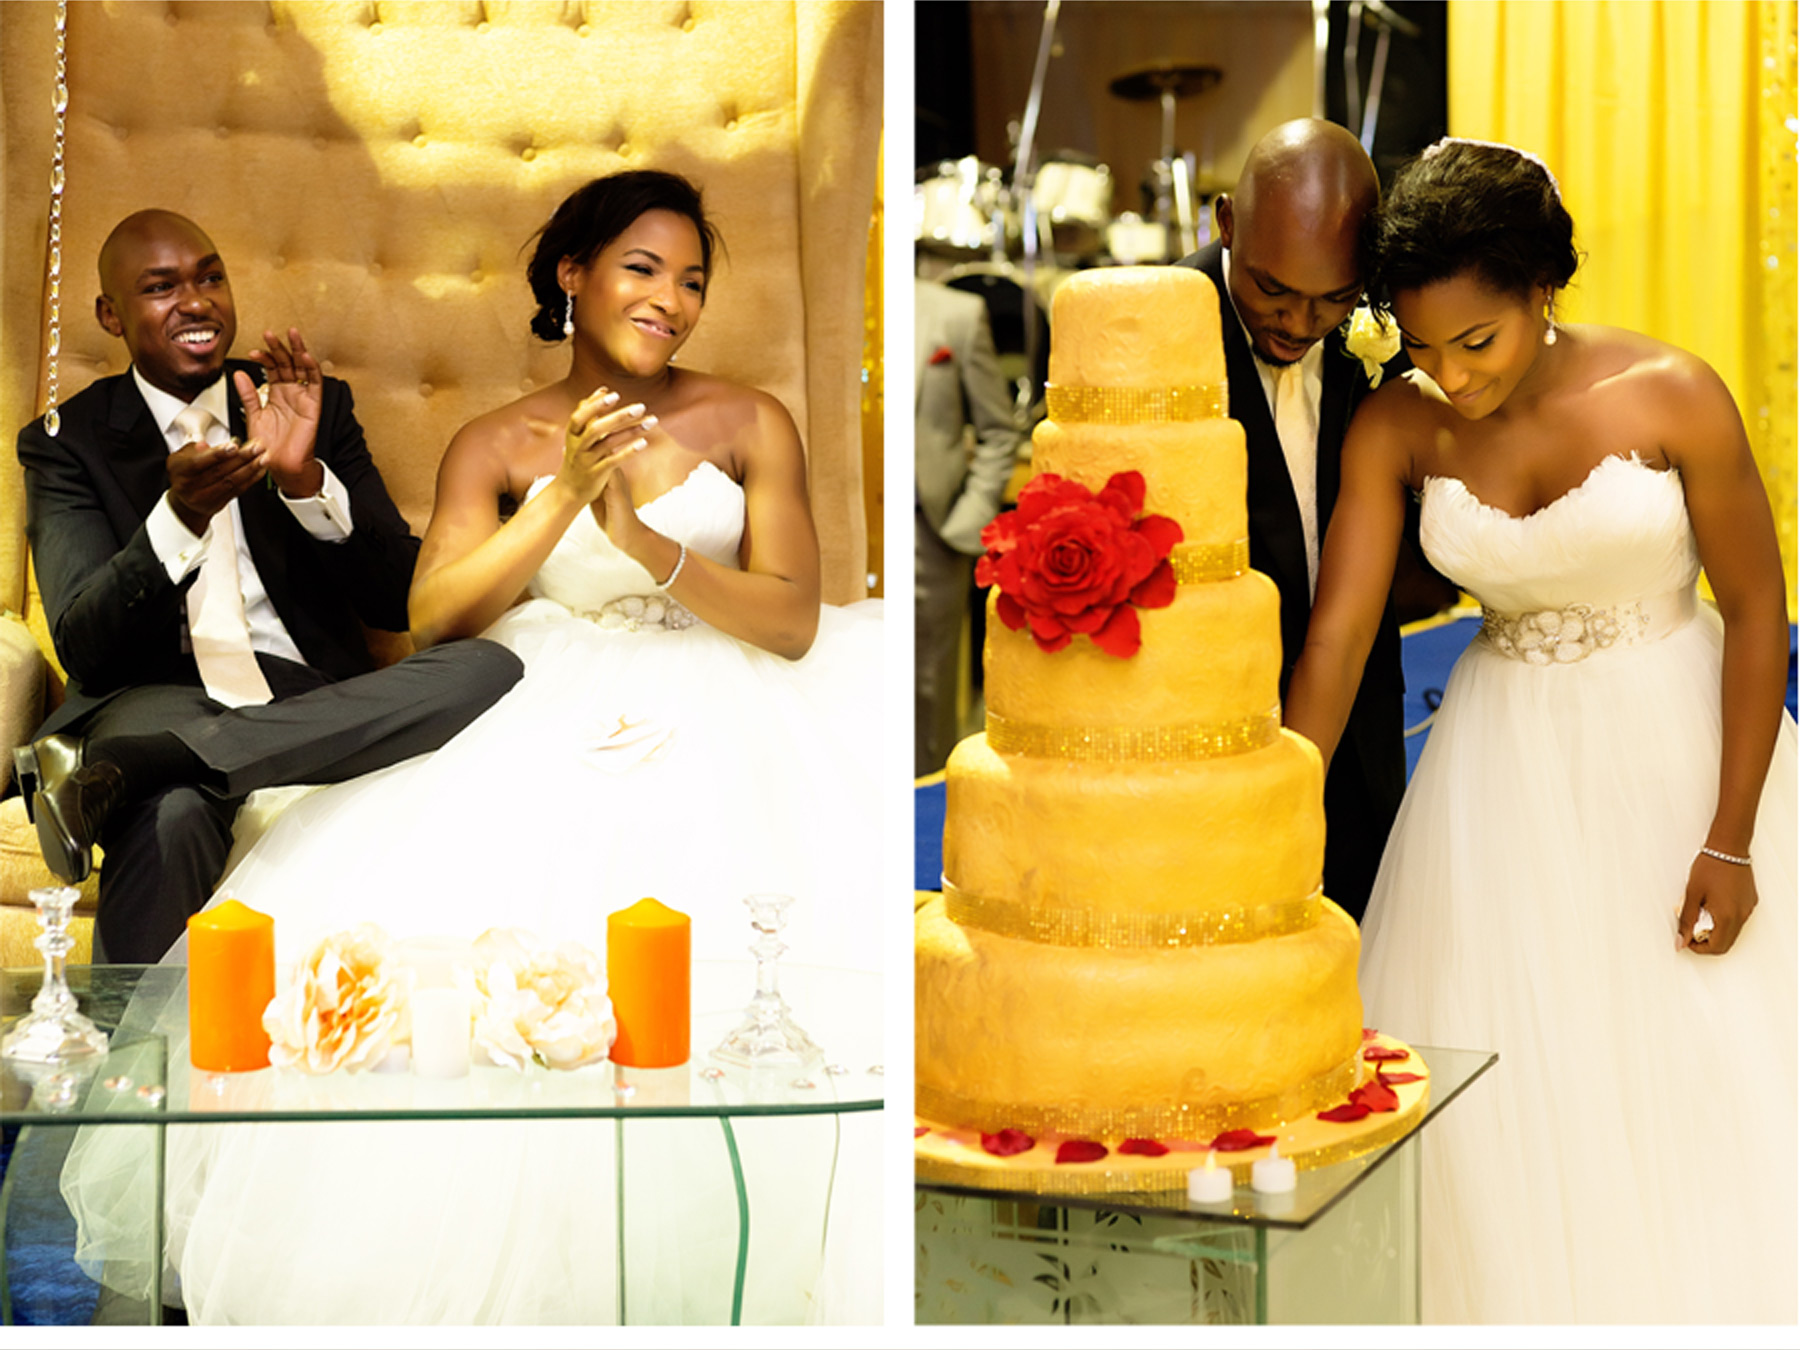 Our Muse - Bright Nigerian Wedding - Be inspired by Ndali Data & Kayode's bright Nigerian wedding in Lagos - wedding, nigeria, lagos, ark center, glamorous, bright, colorful, cake, gold, reception